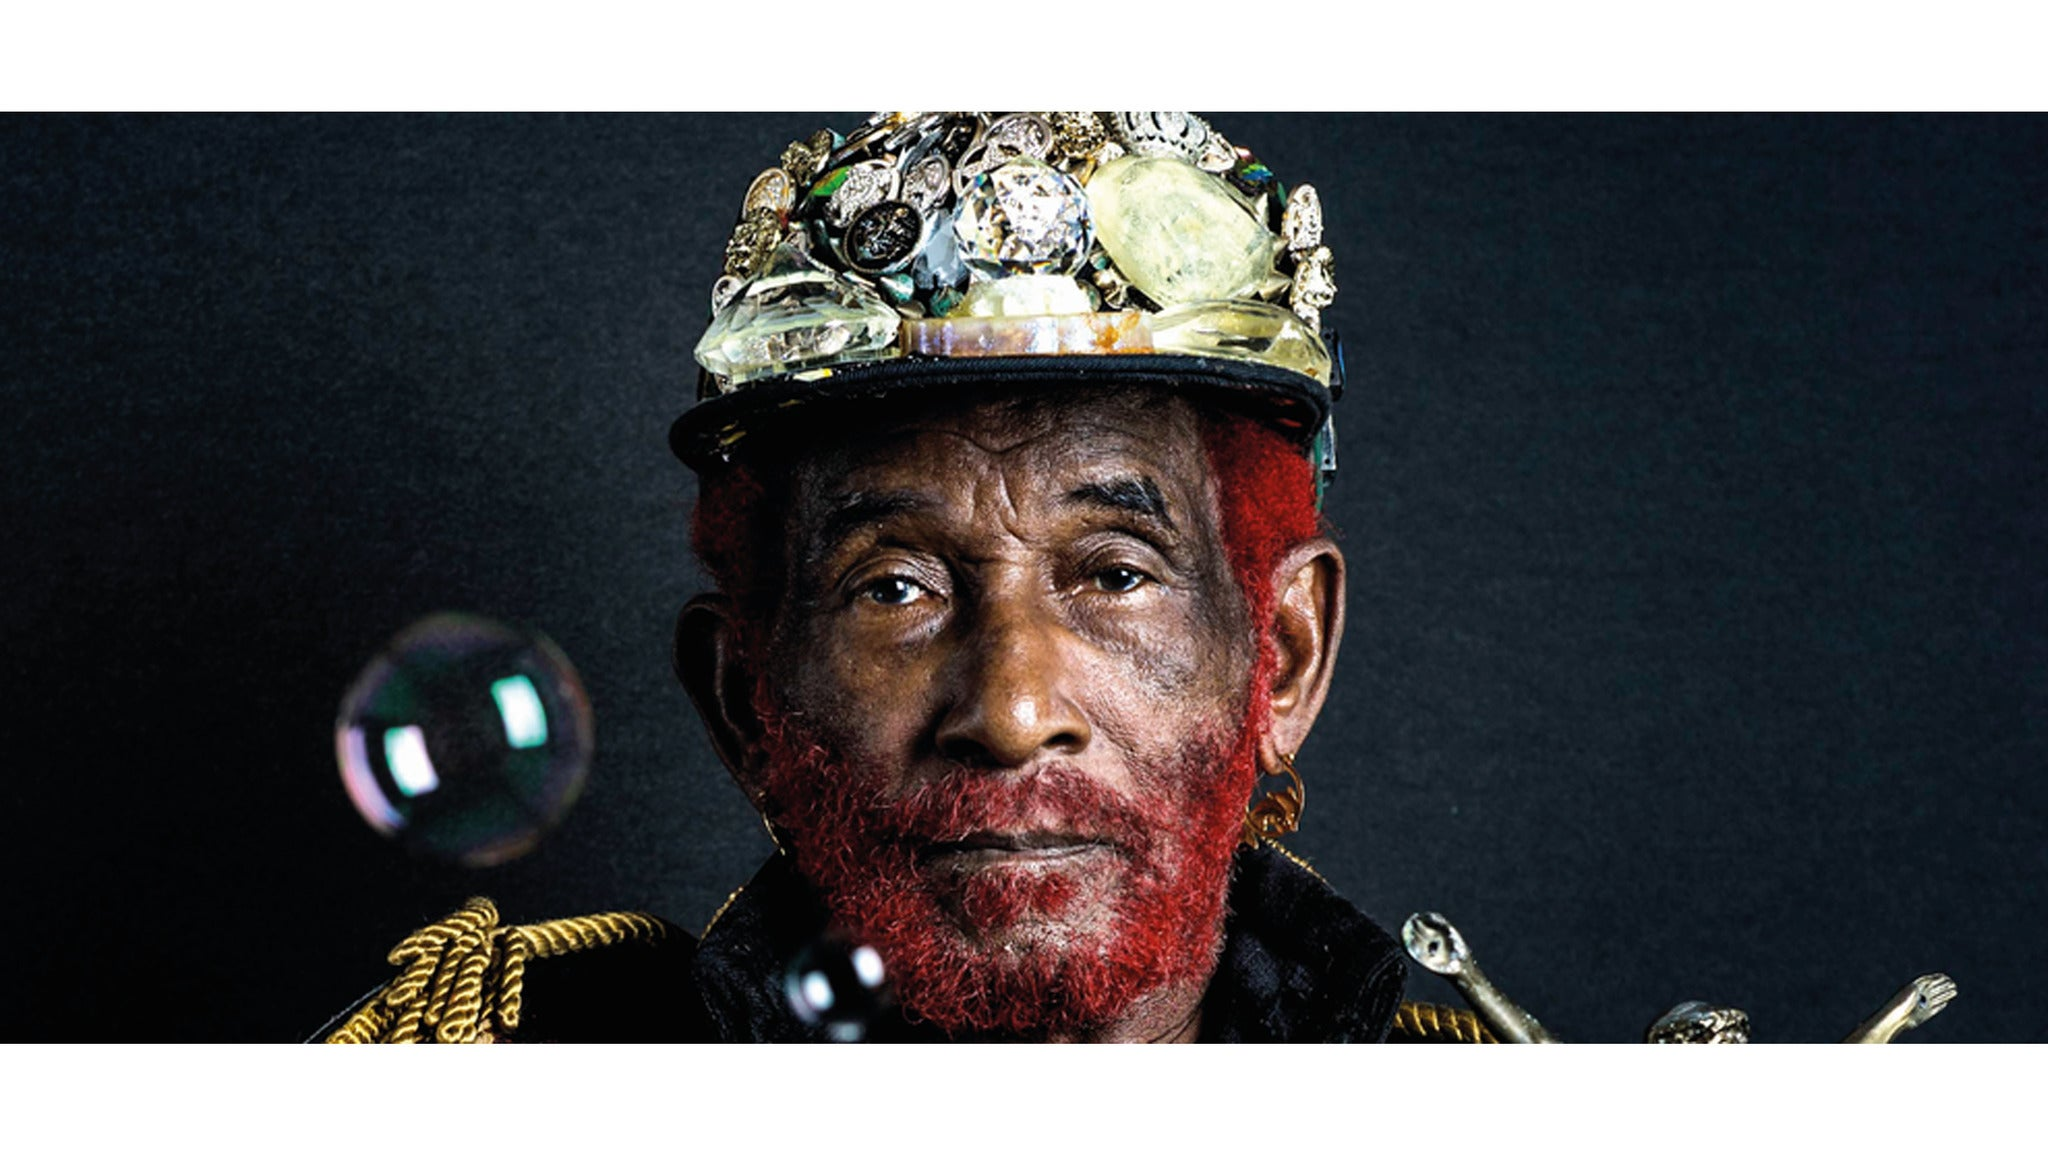 Lee 'Scratch' Perry at The Chapel